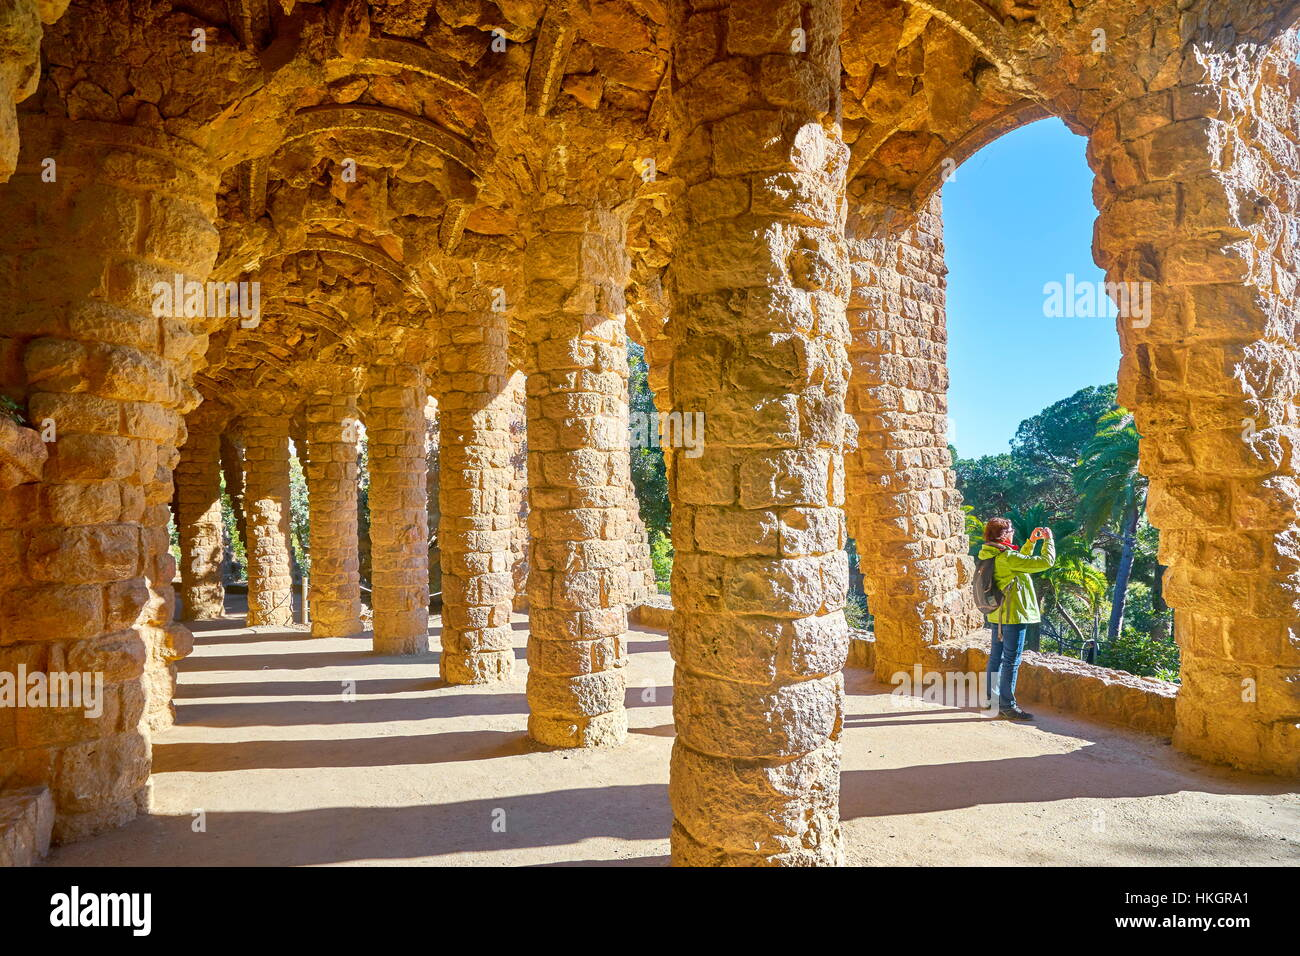 Park Guell by Antoni Gaudi, Barcelona, Spain - Stock Image